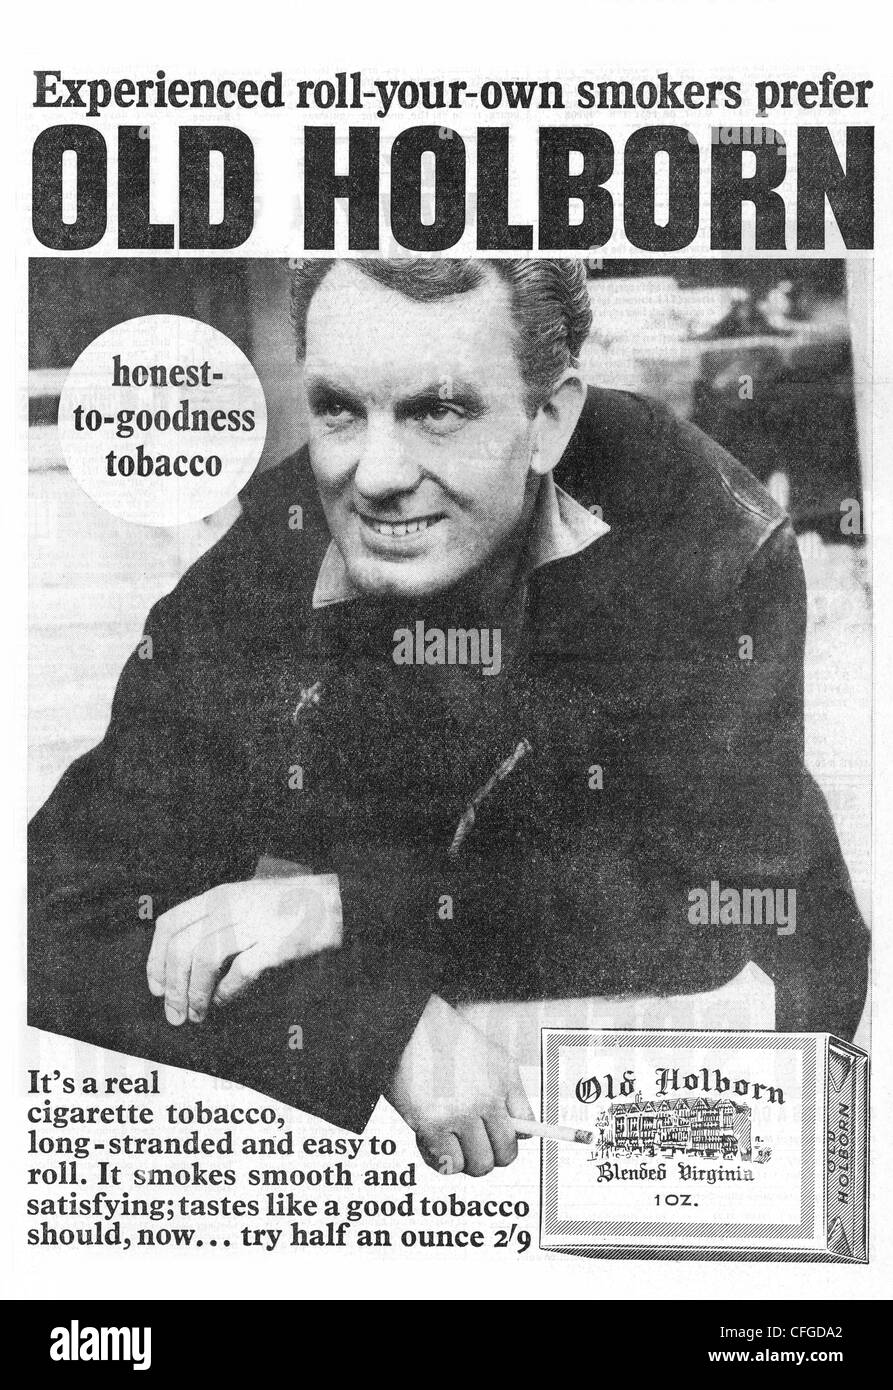 Old Holborn tobacco advert from 1965 - Stock Image